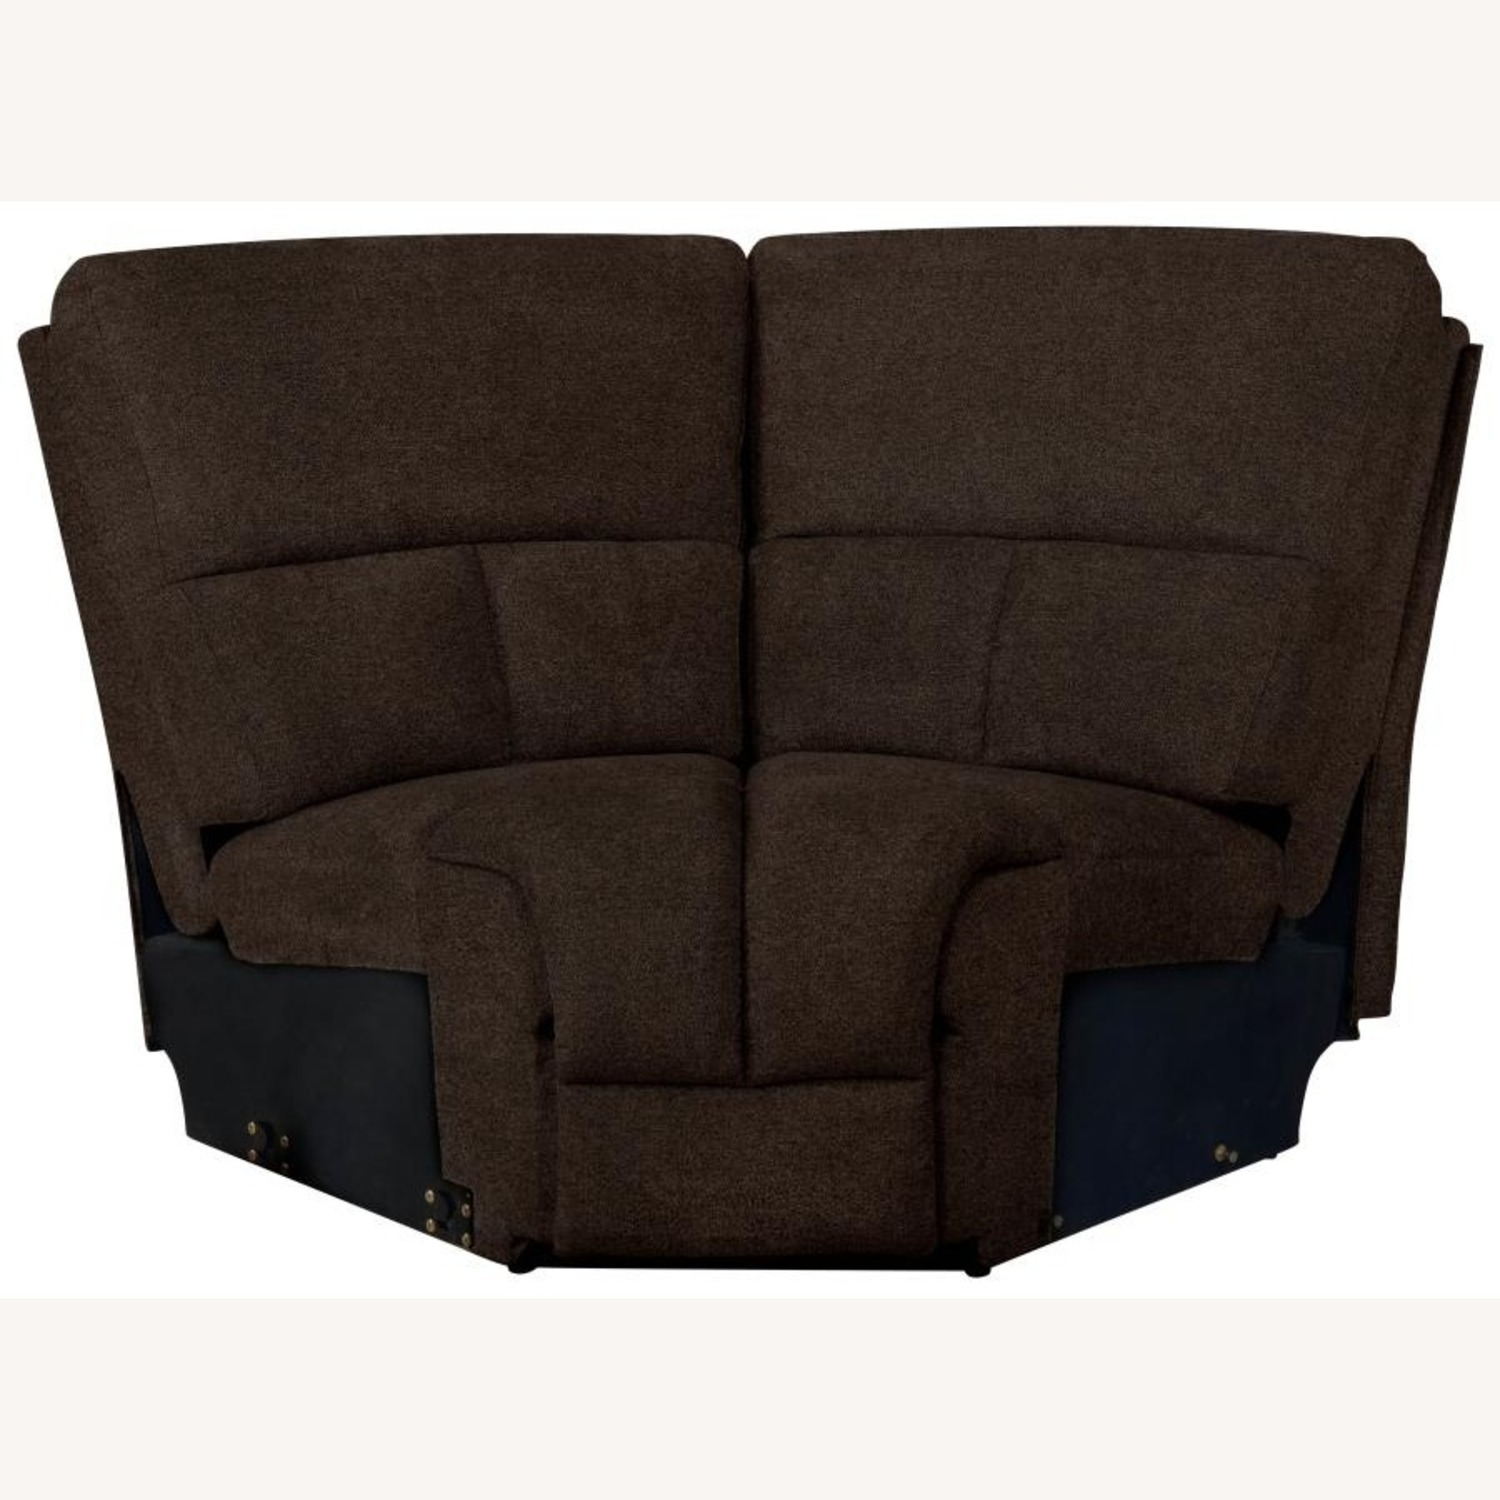 Motion Sectional In Brown Performance Fabric - image-8